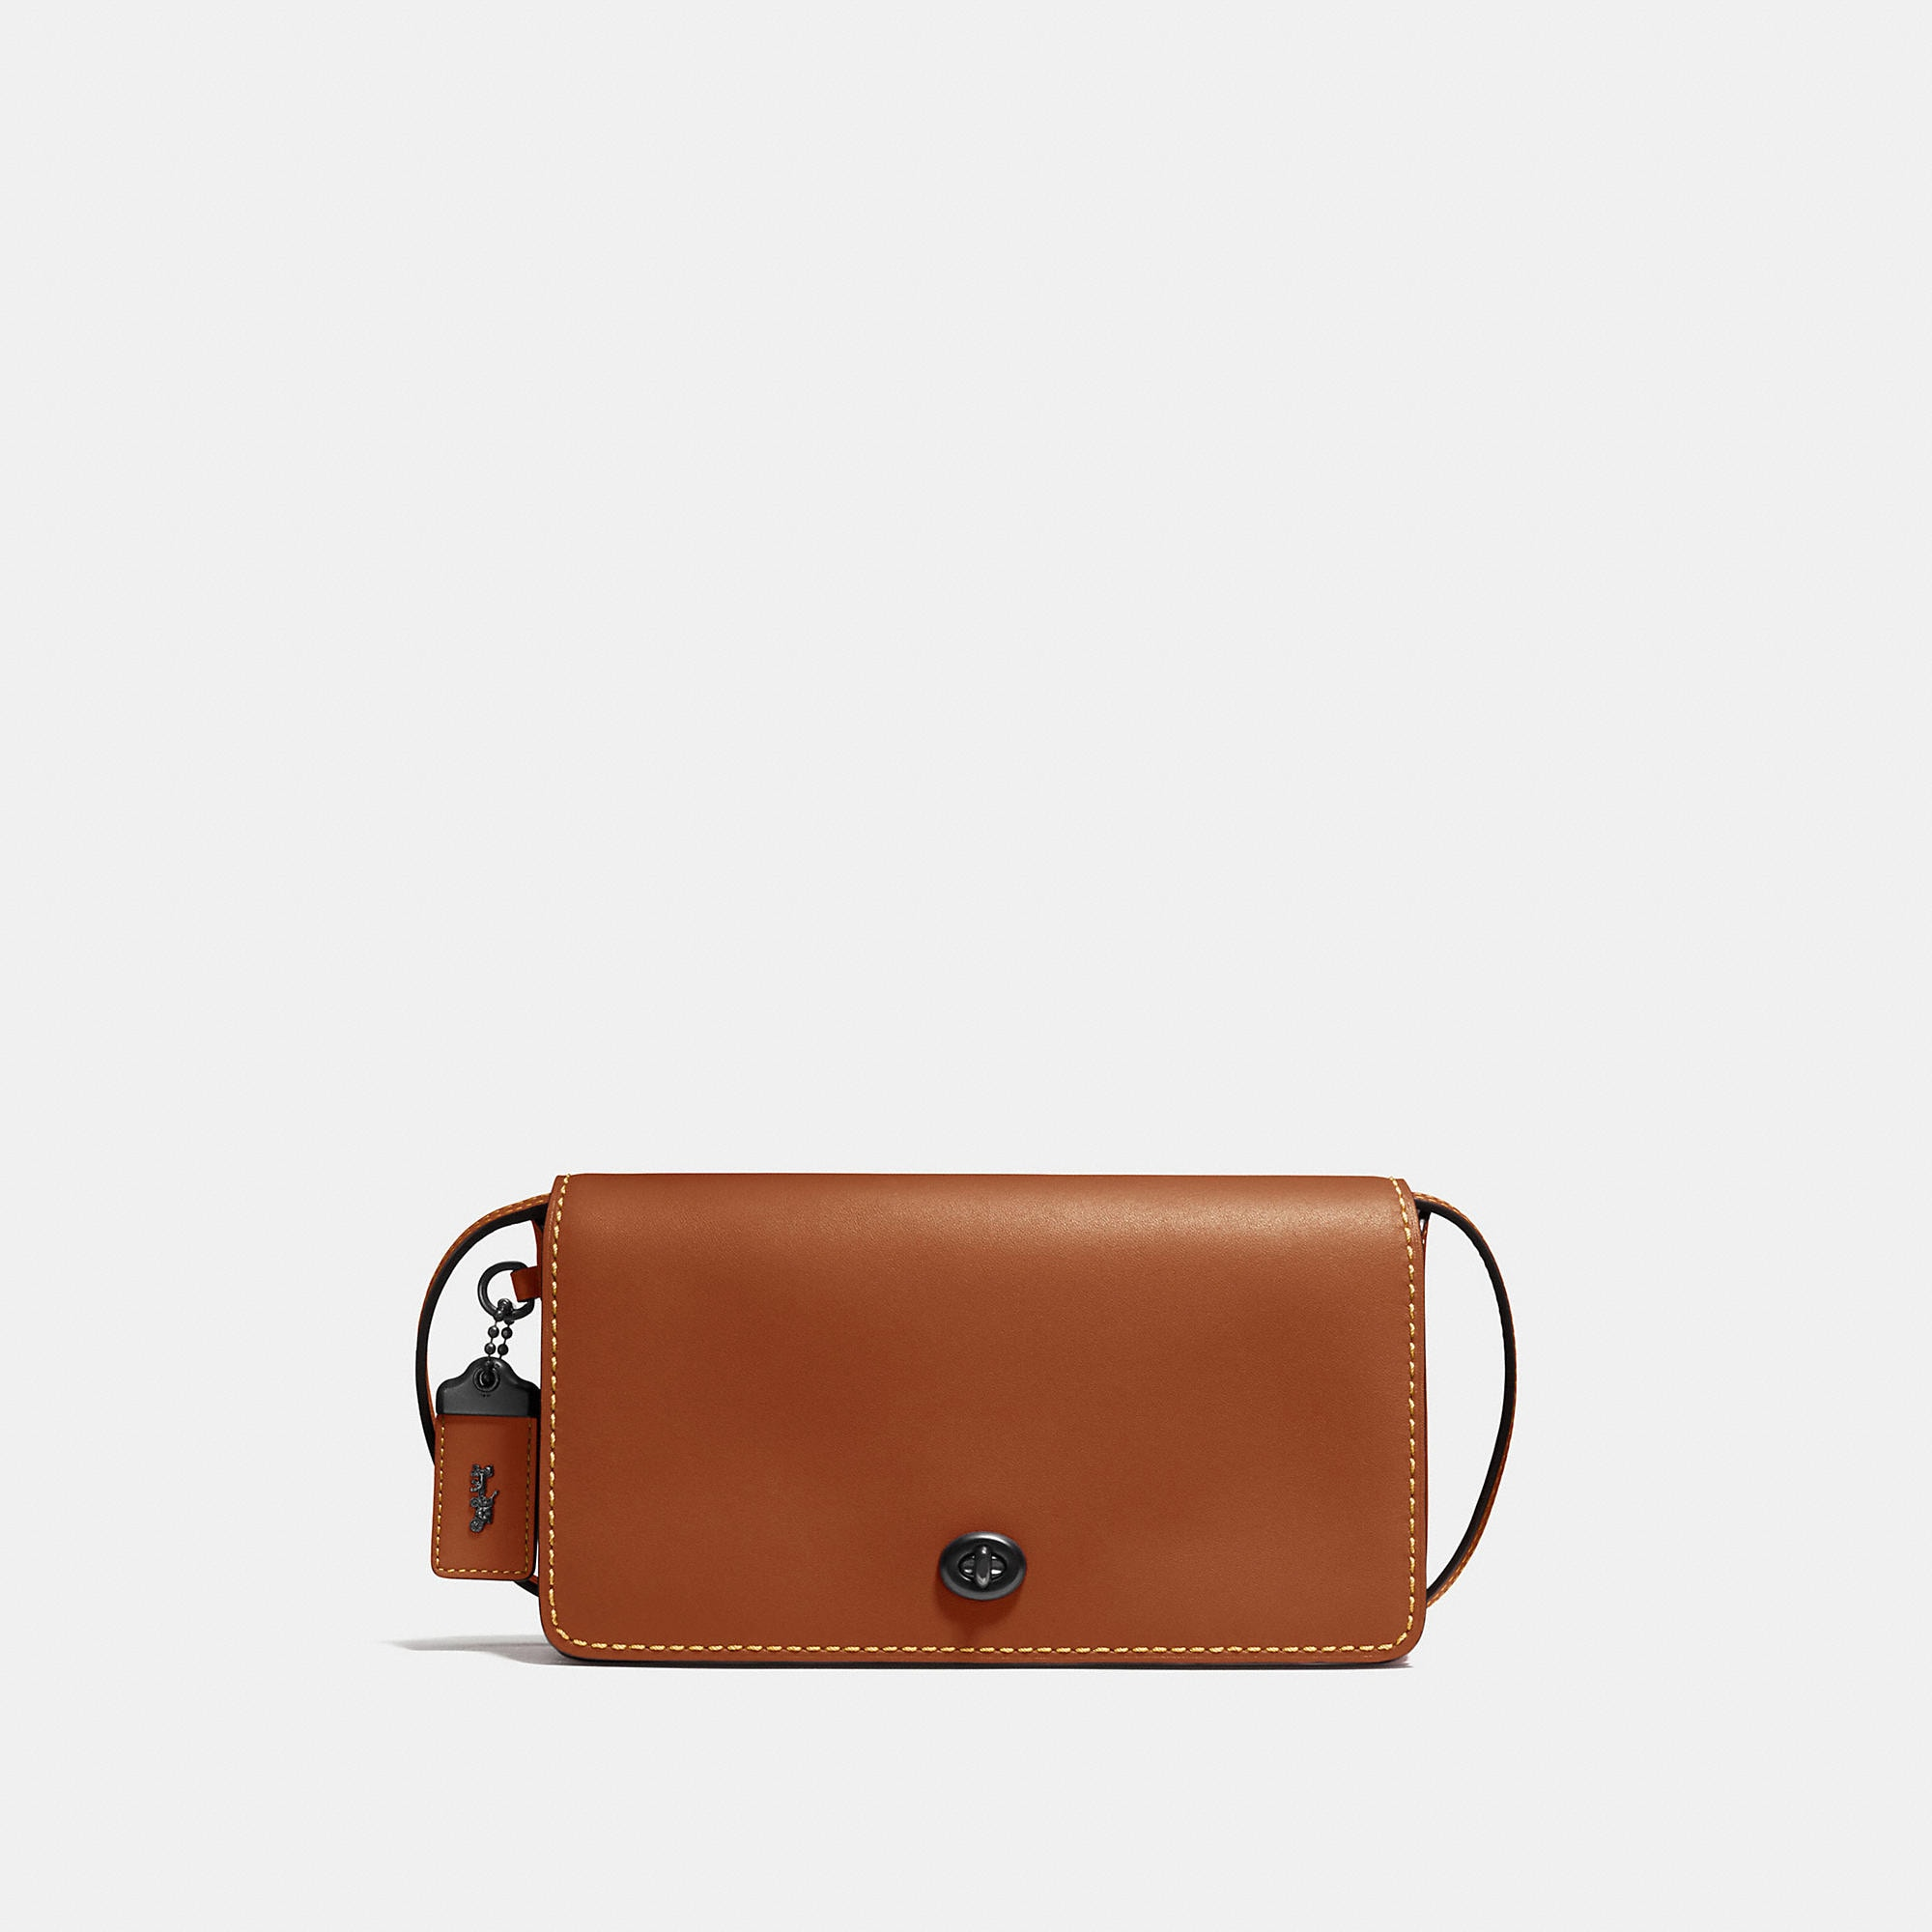 Coach 1941 Dinky Crossbody In Glovetanned Leather